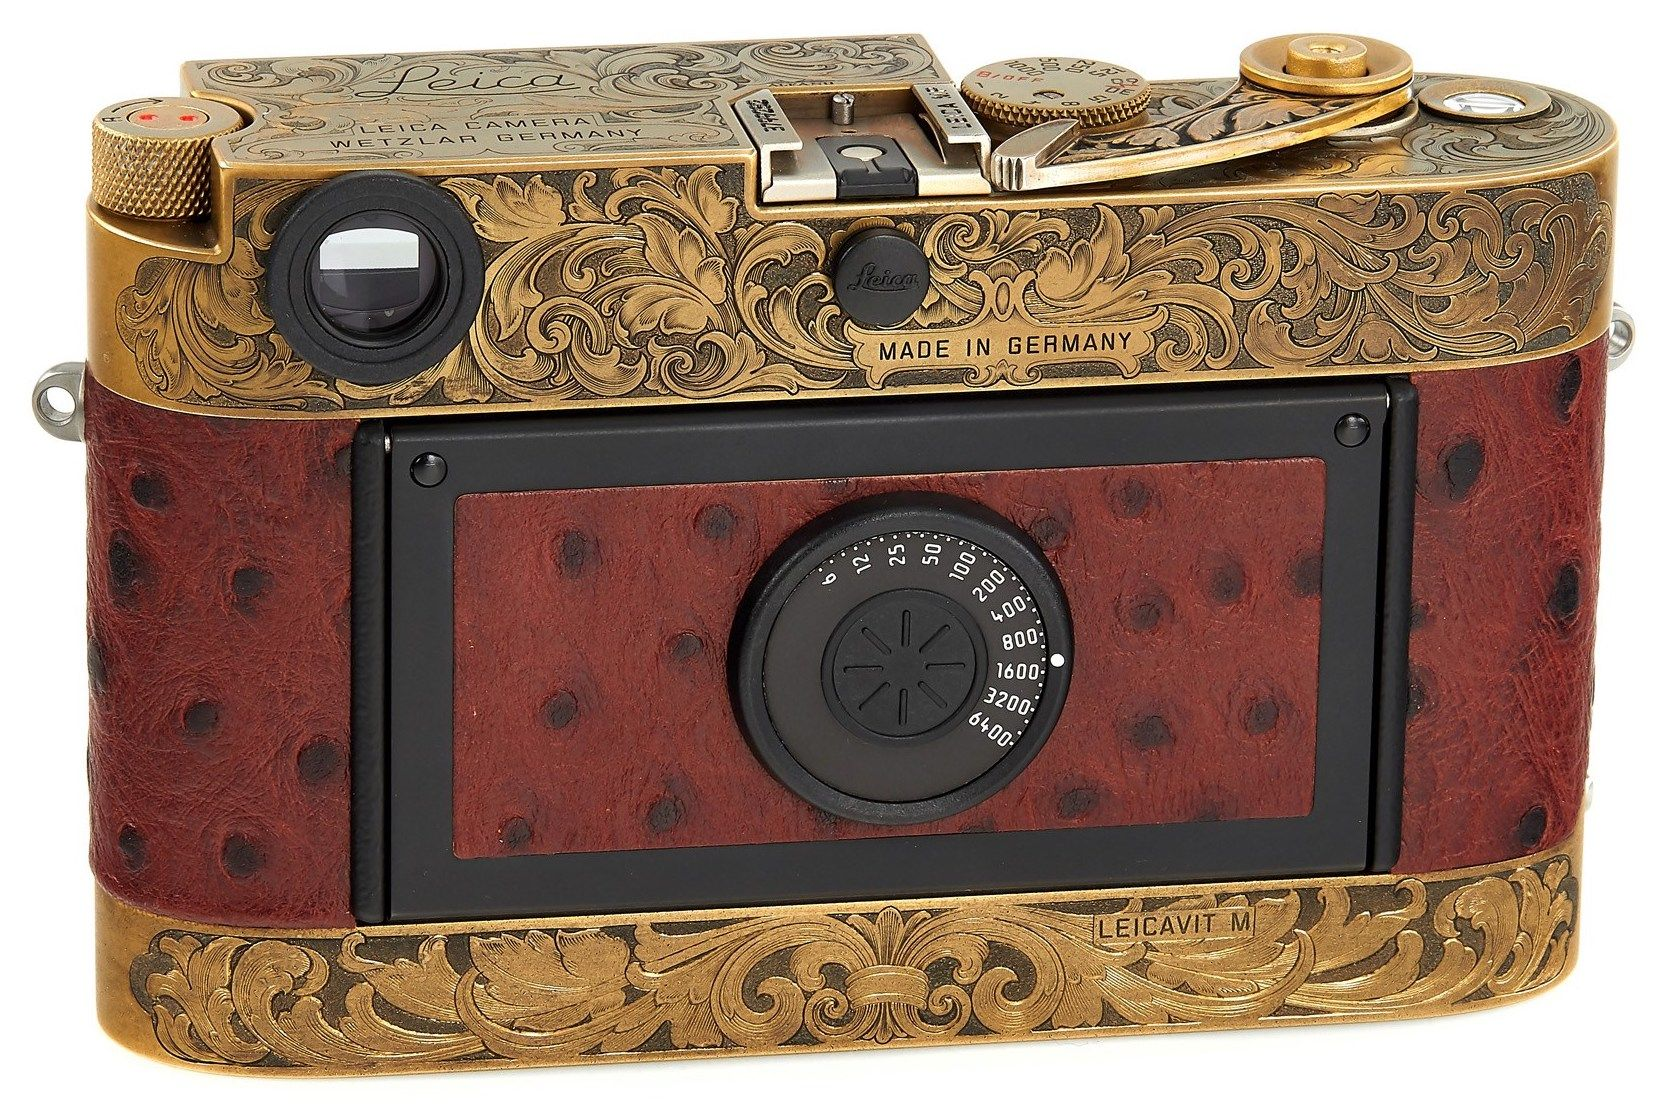 It took more than 2 years to complete this Leica MP